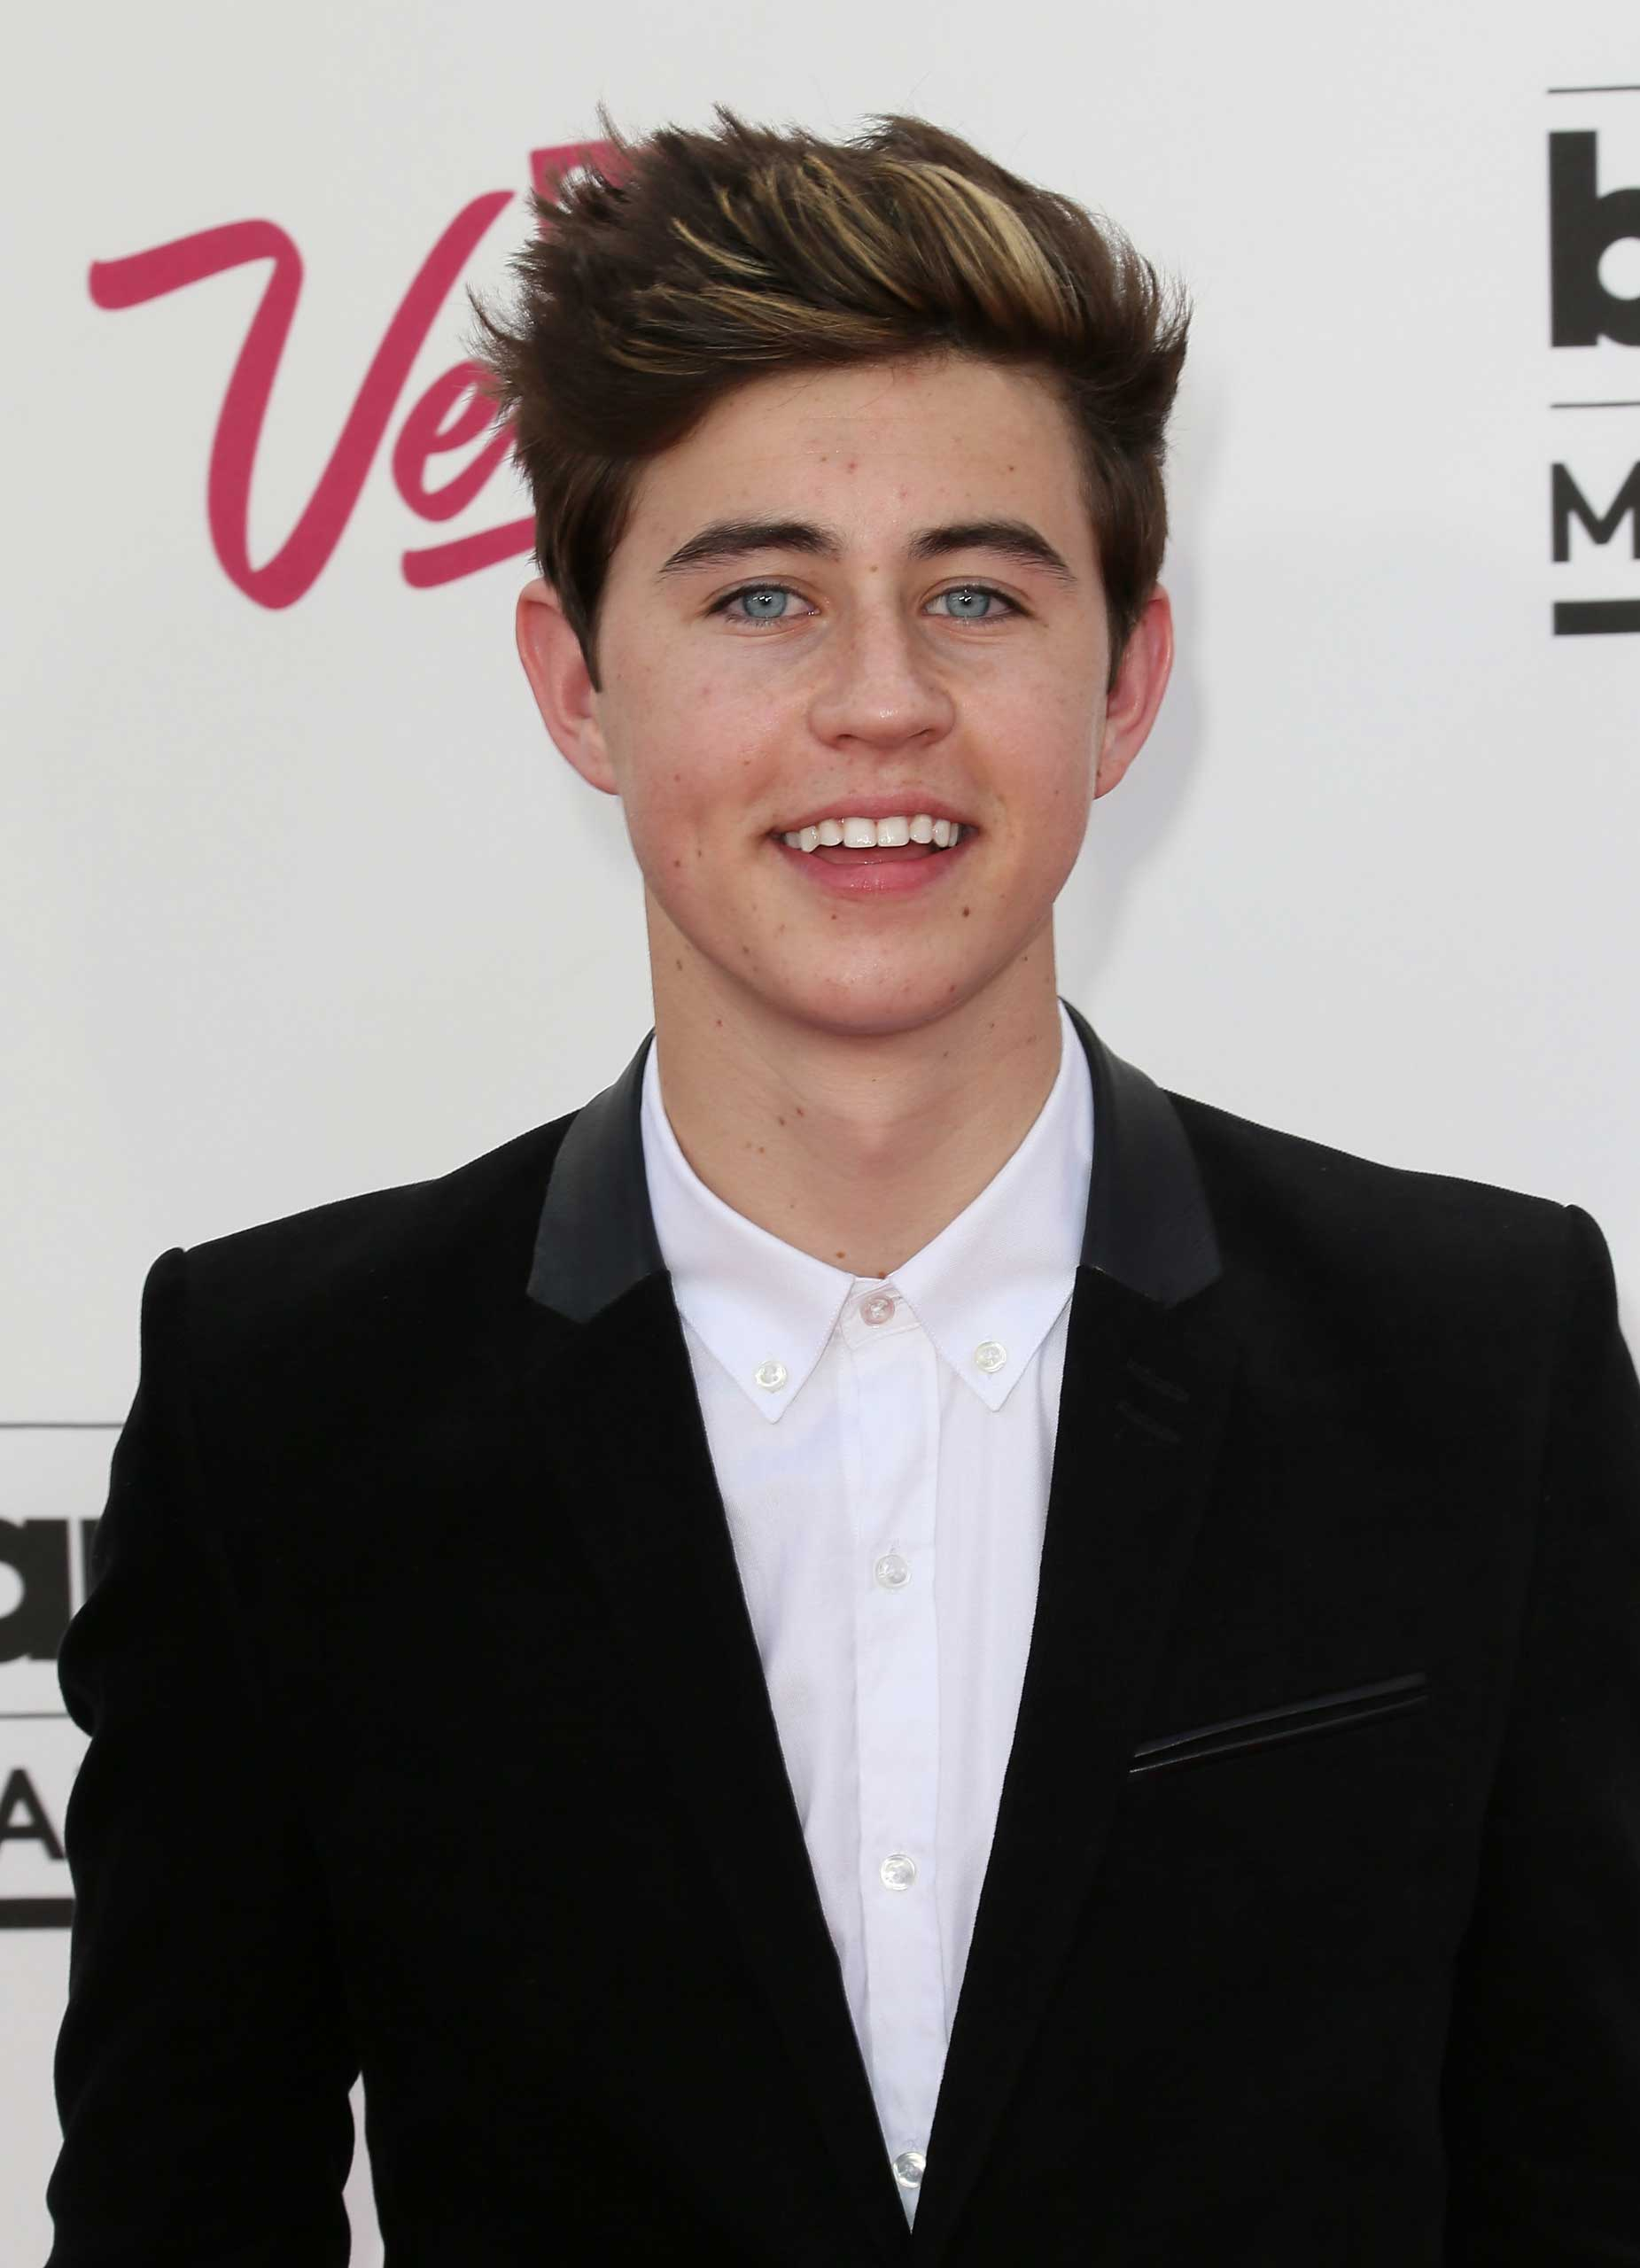 Vine star Nash Grier attends the 2014 Billboard Music Awards at the MGM Grand Garden Arena on May 18, 2014 in Las Vegas, Nevada. (Photo by David Livingston/Getty Images)